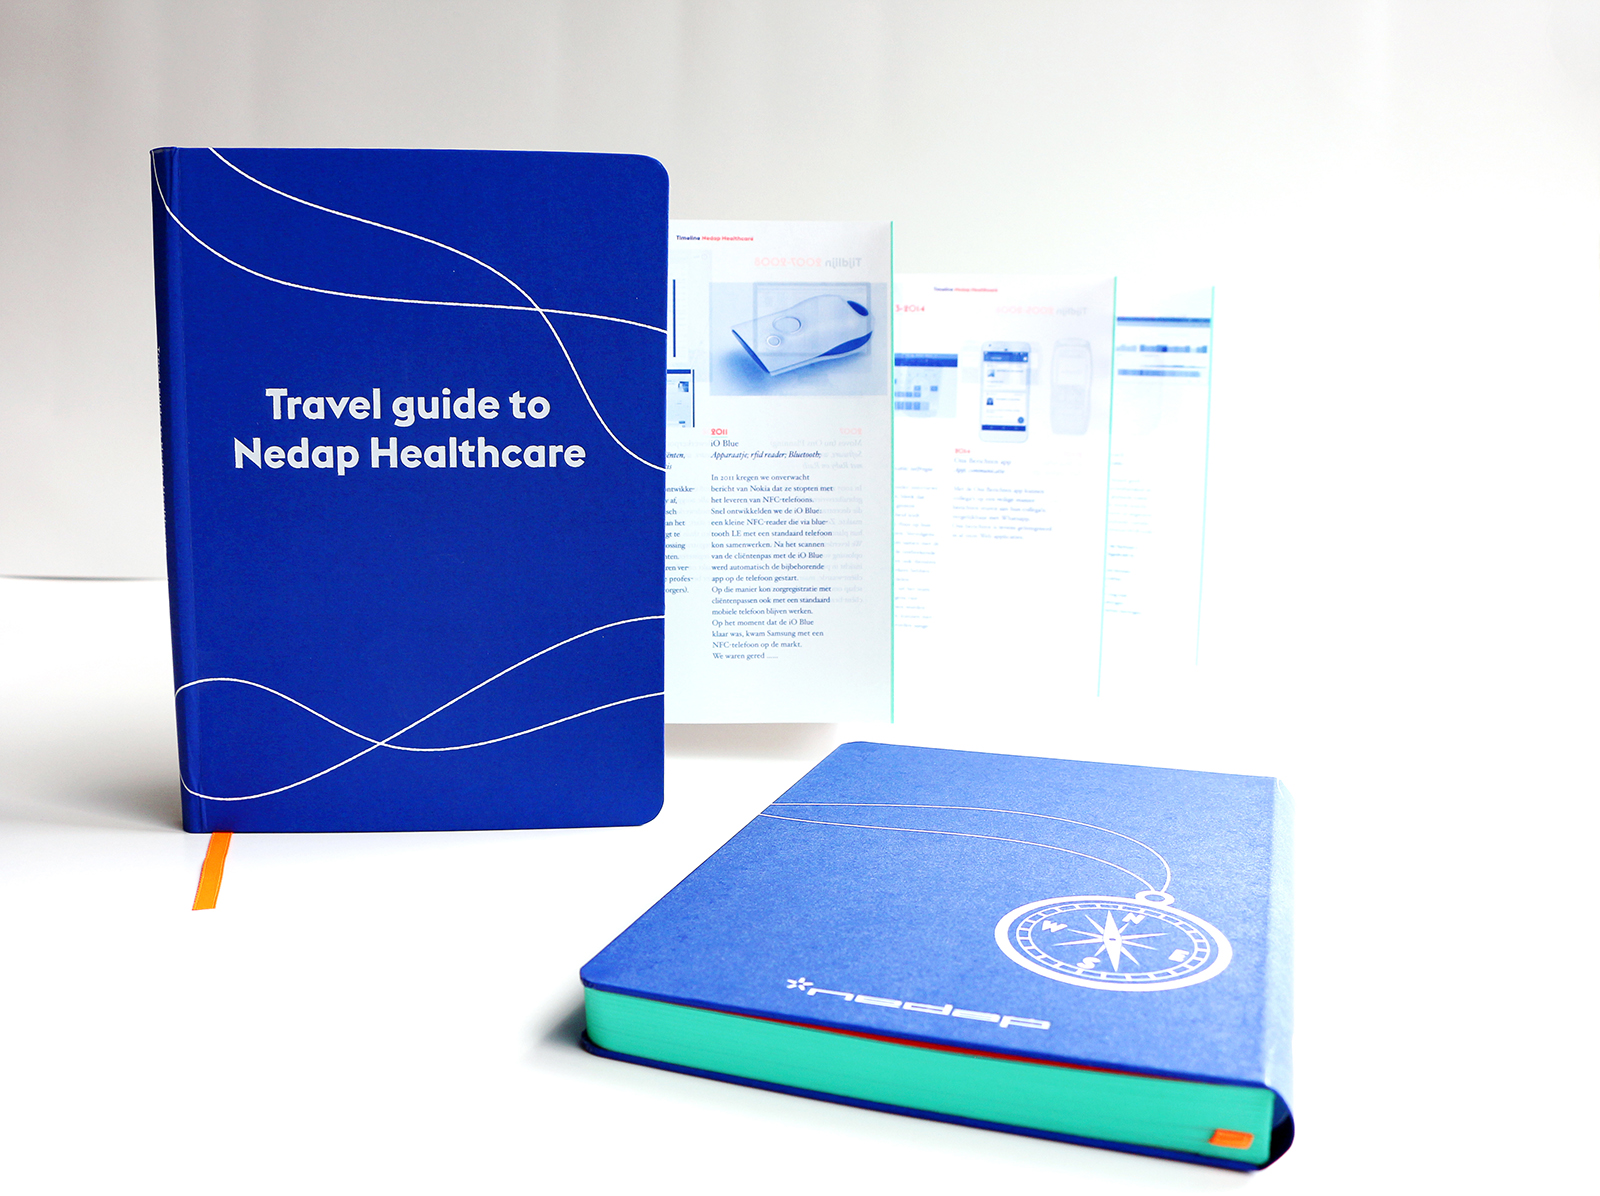 Welkom Travel guide to Nedap Healthcare